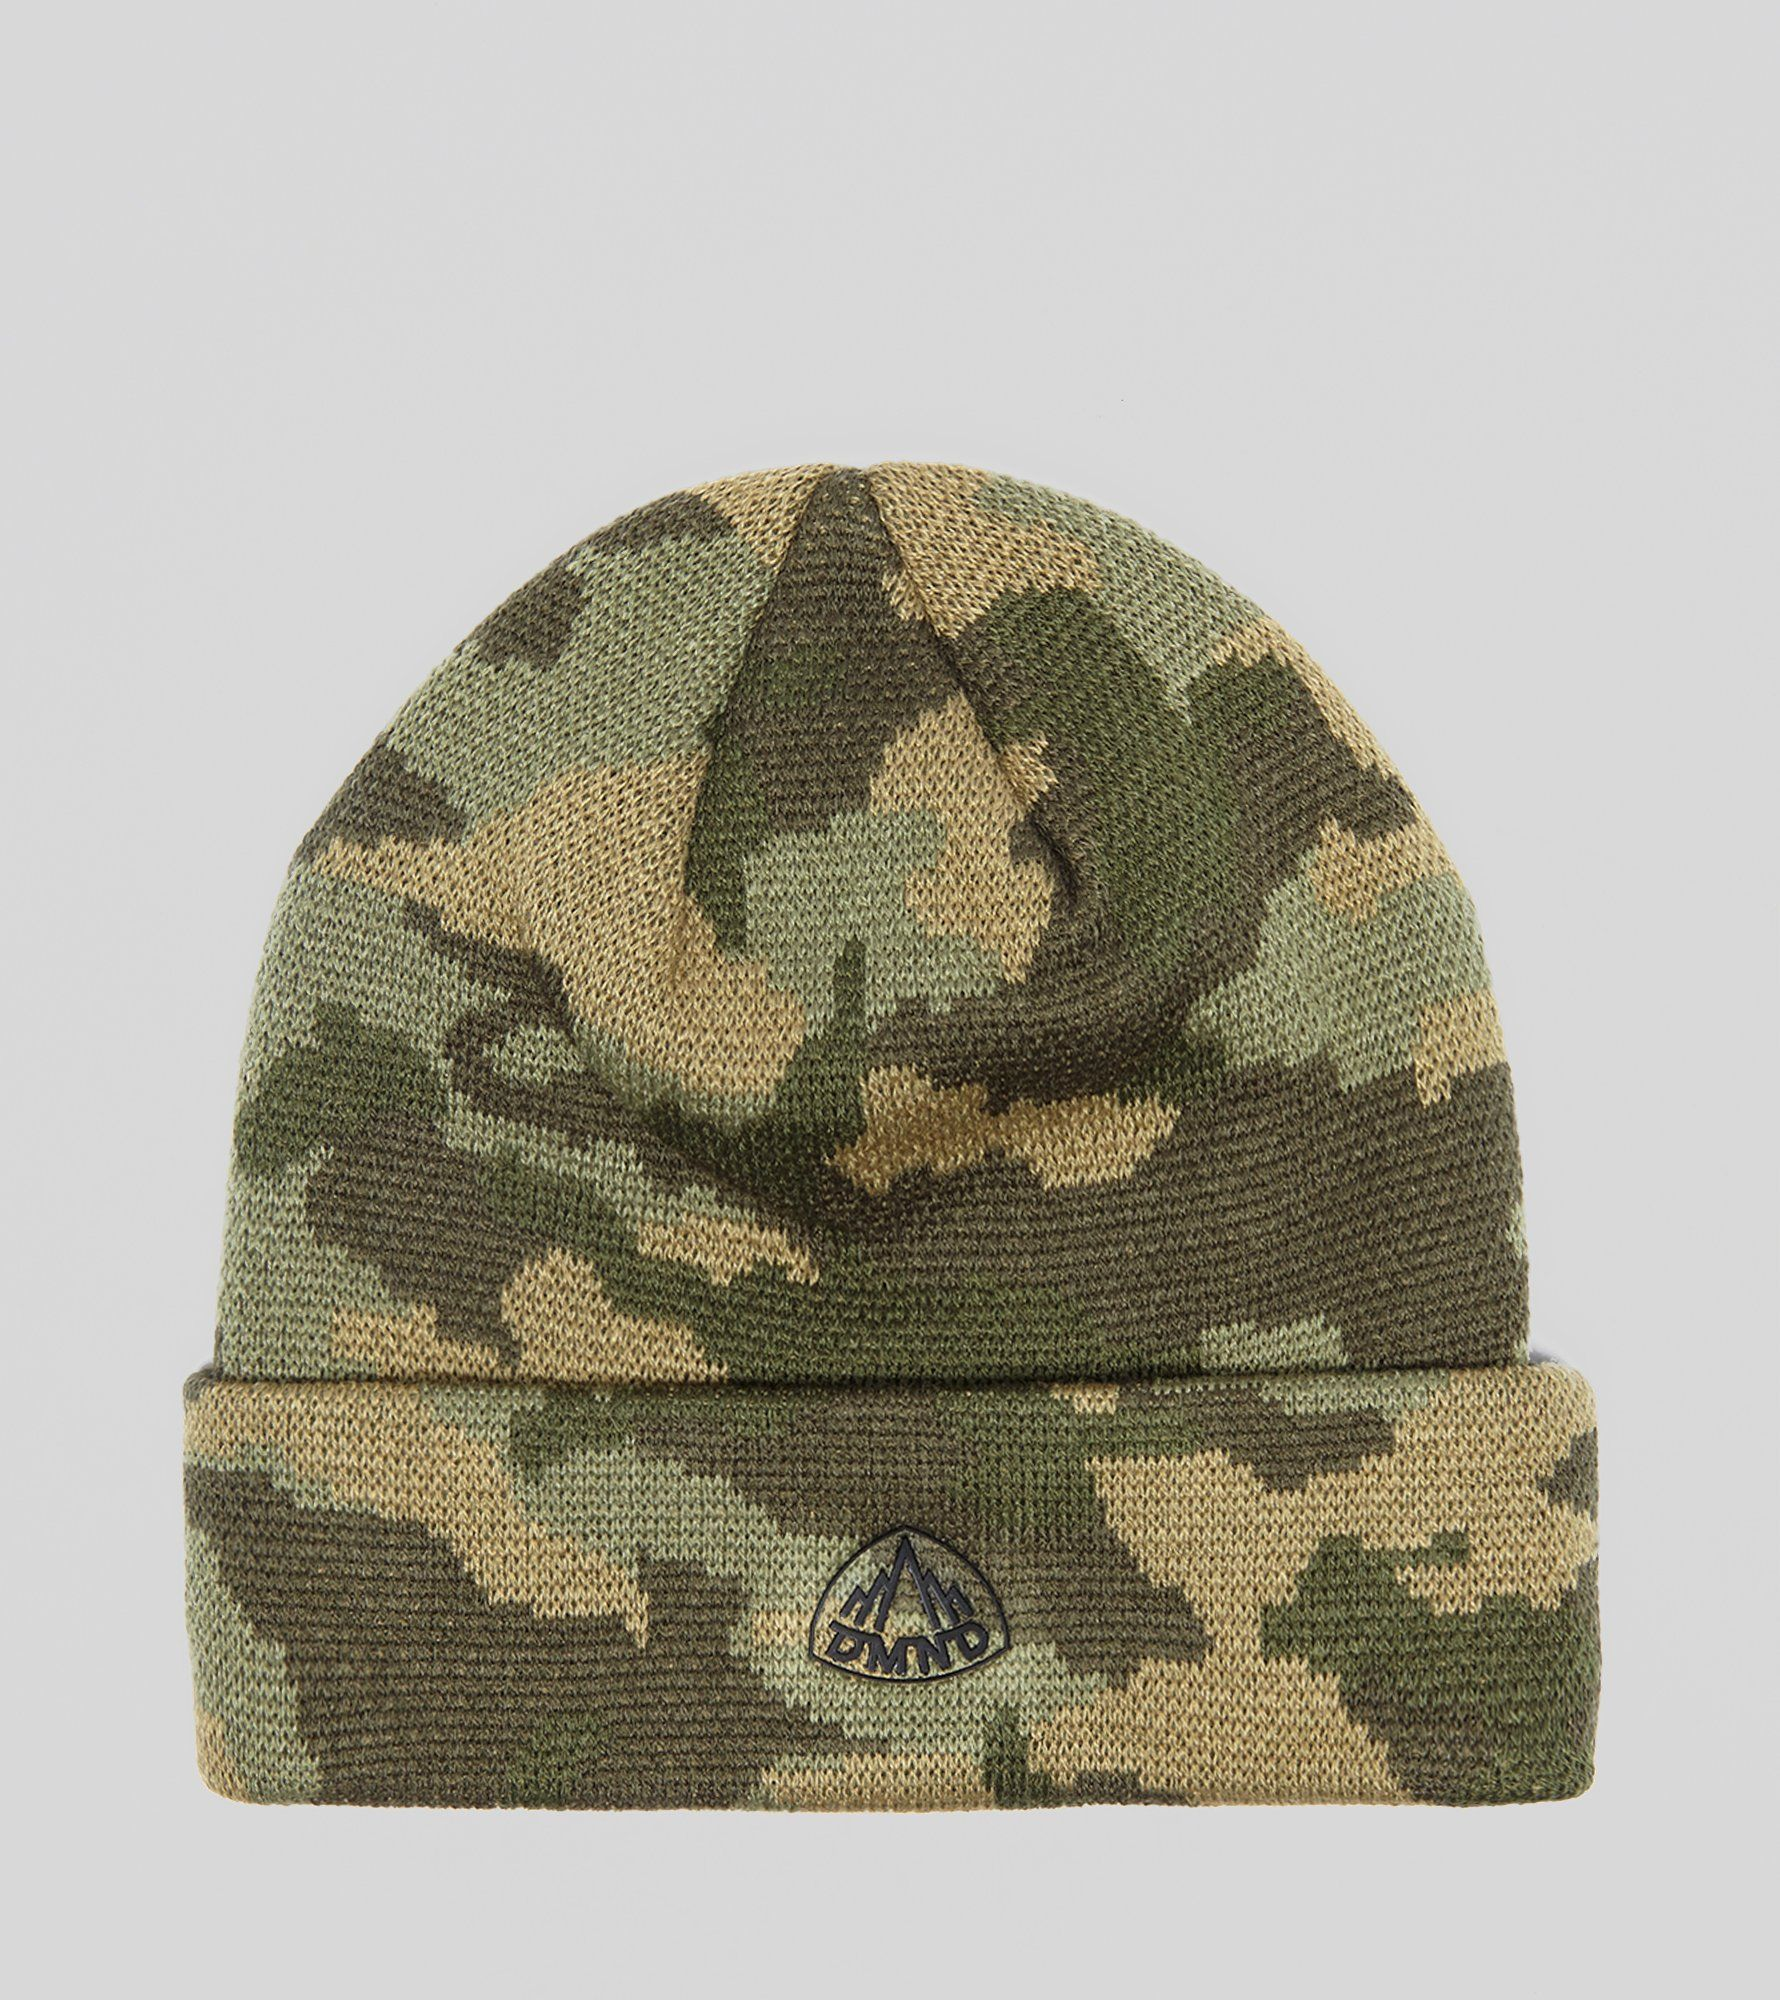 Diamond Supply Mountaineering Beanie